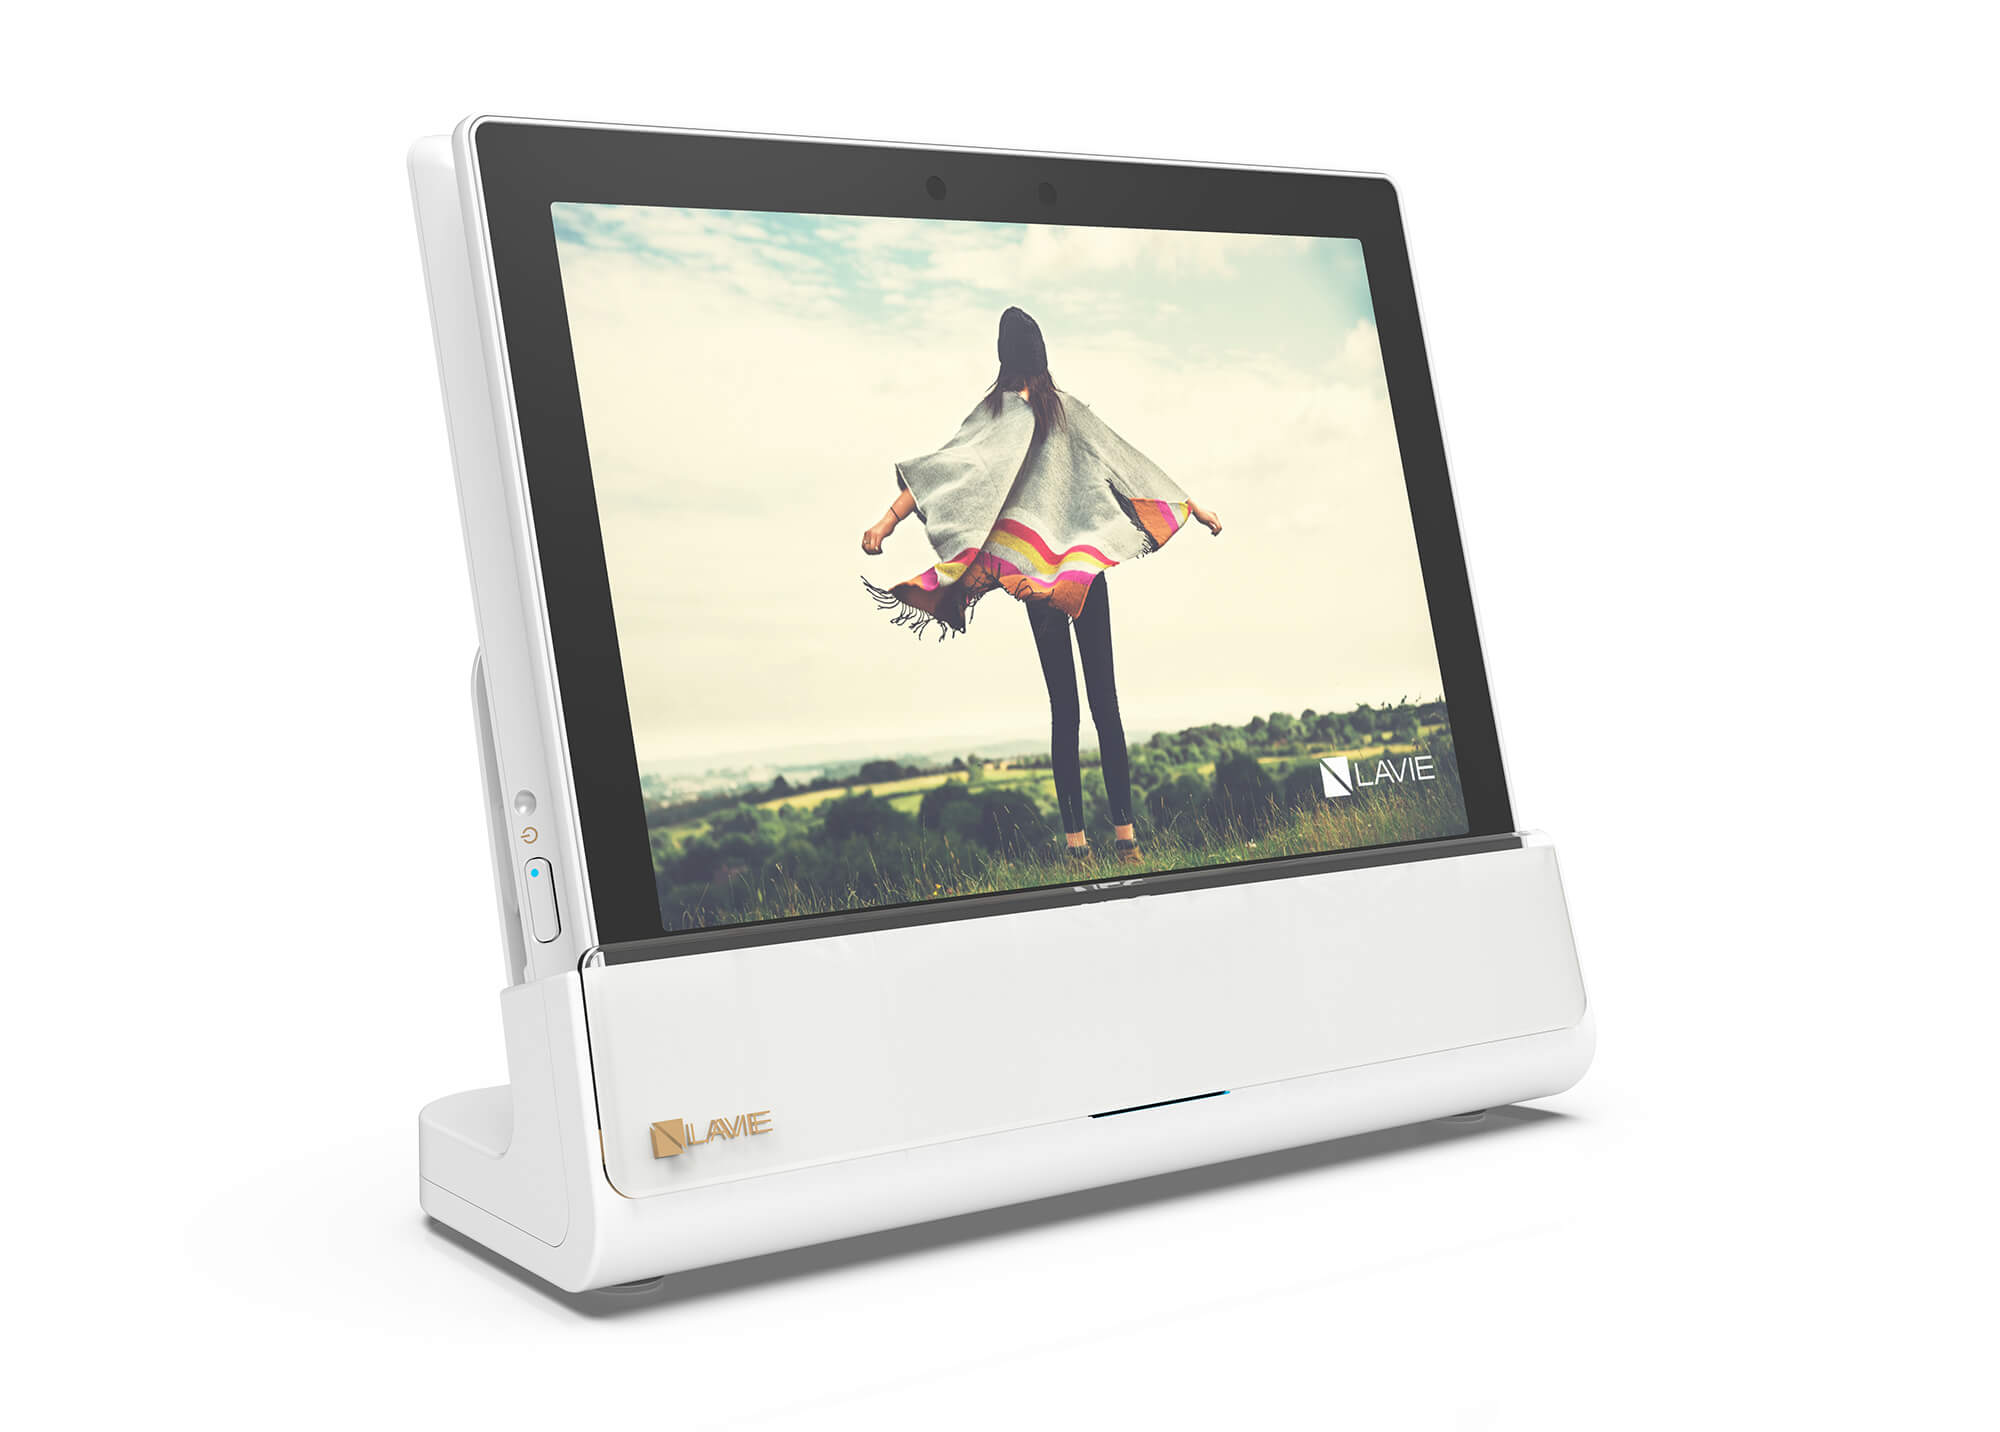 Lenovo Lavie Mini